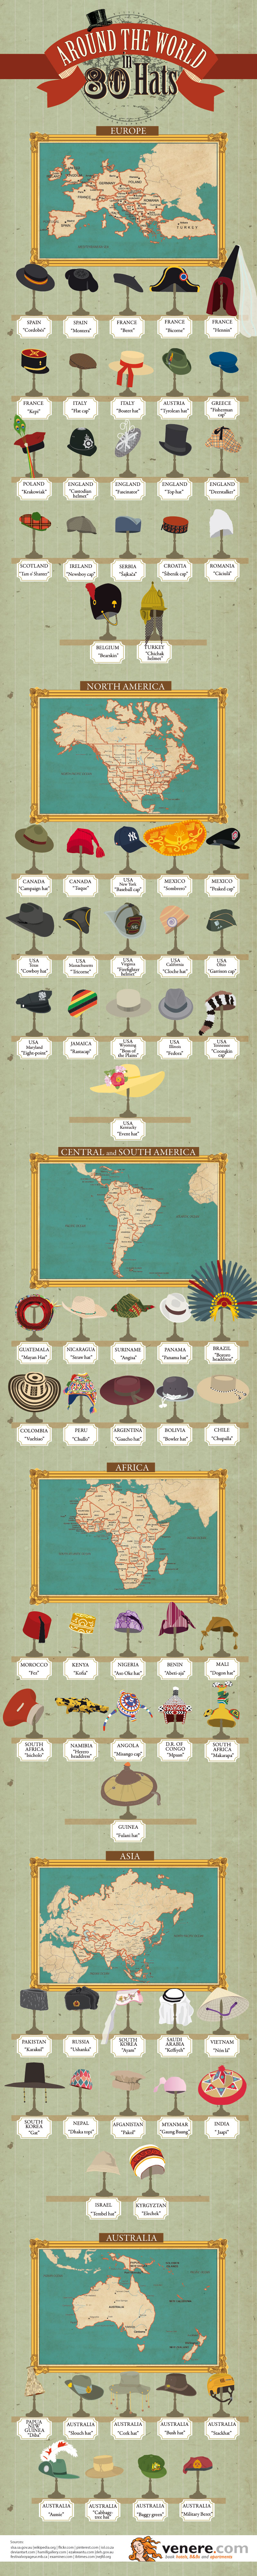 Around the World in 80 Hats infographic